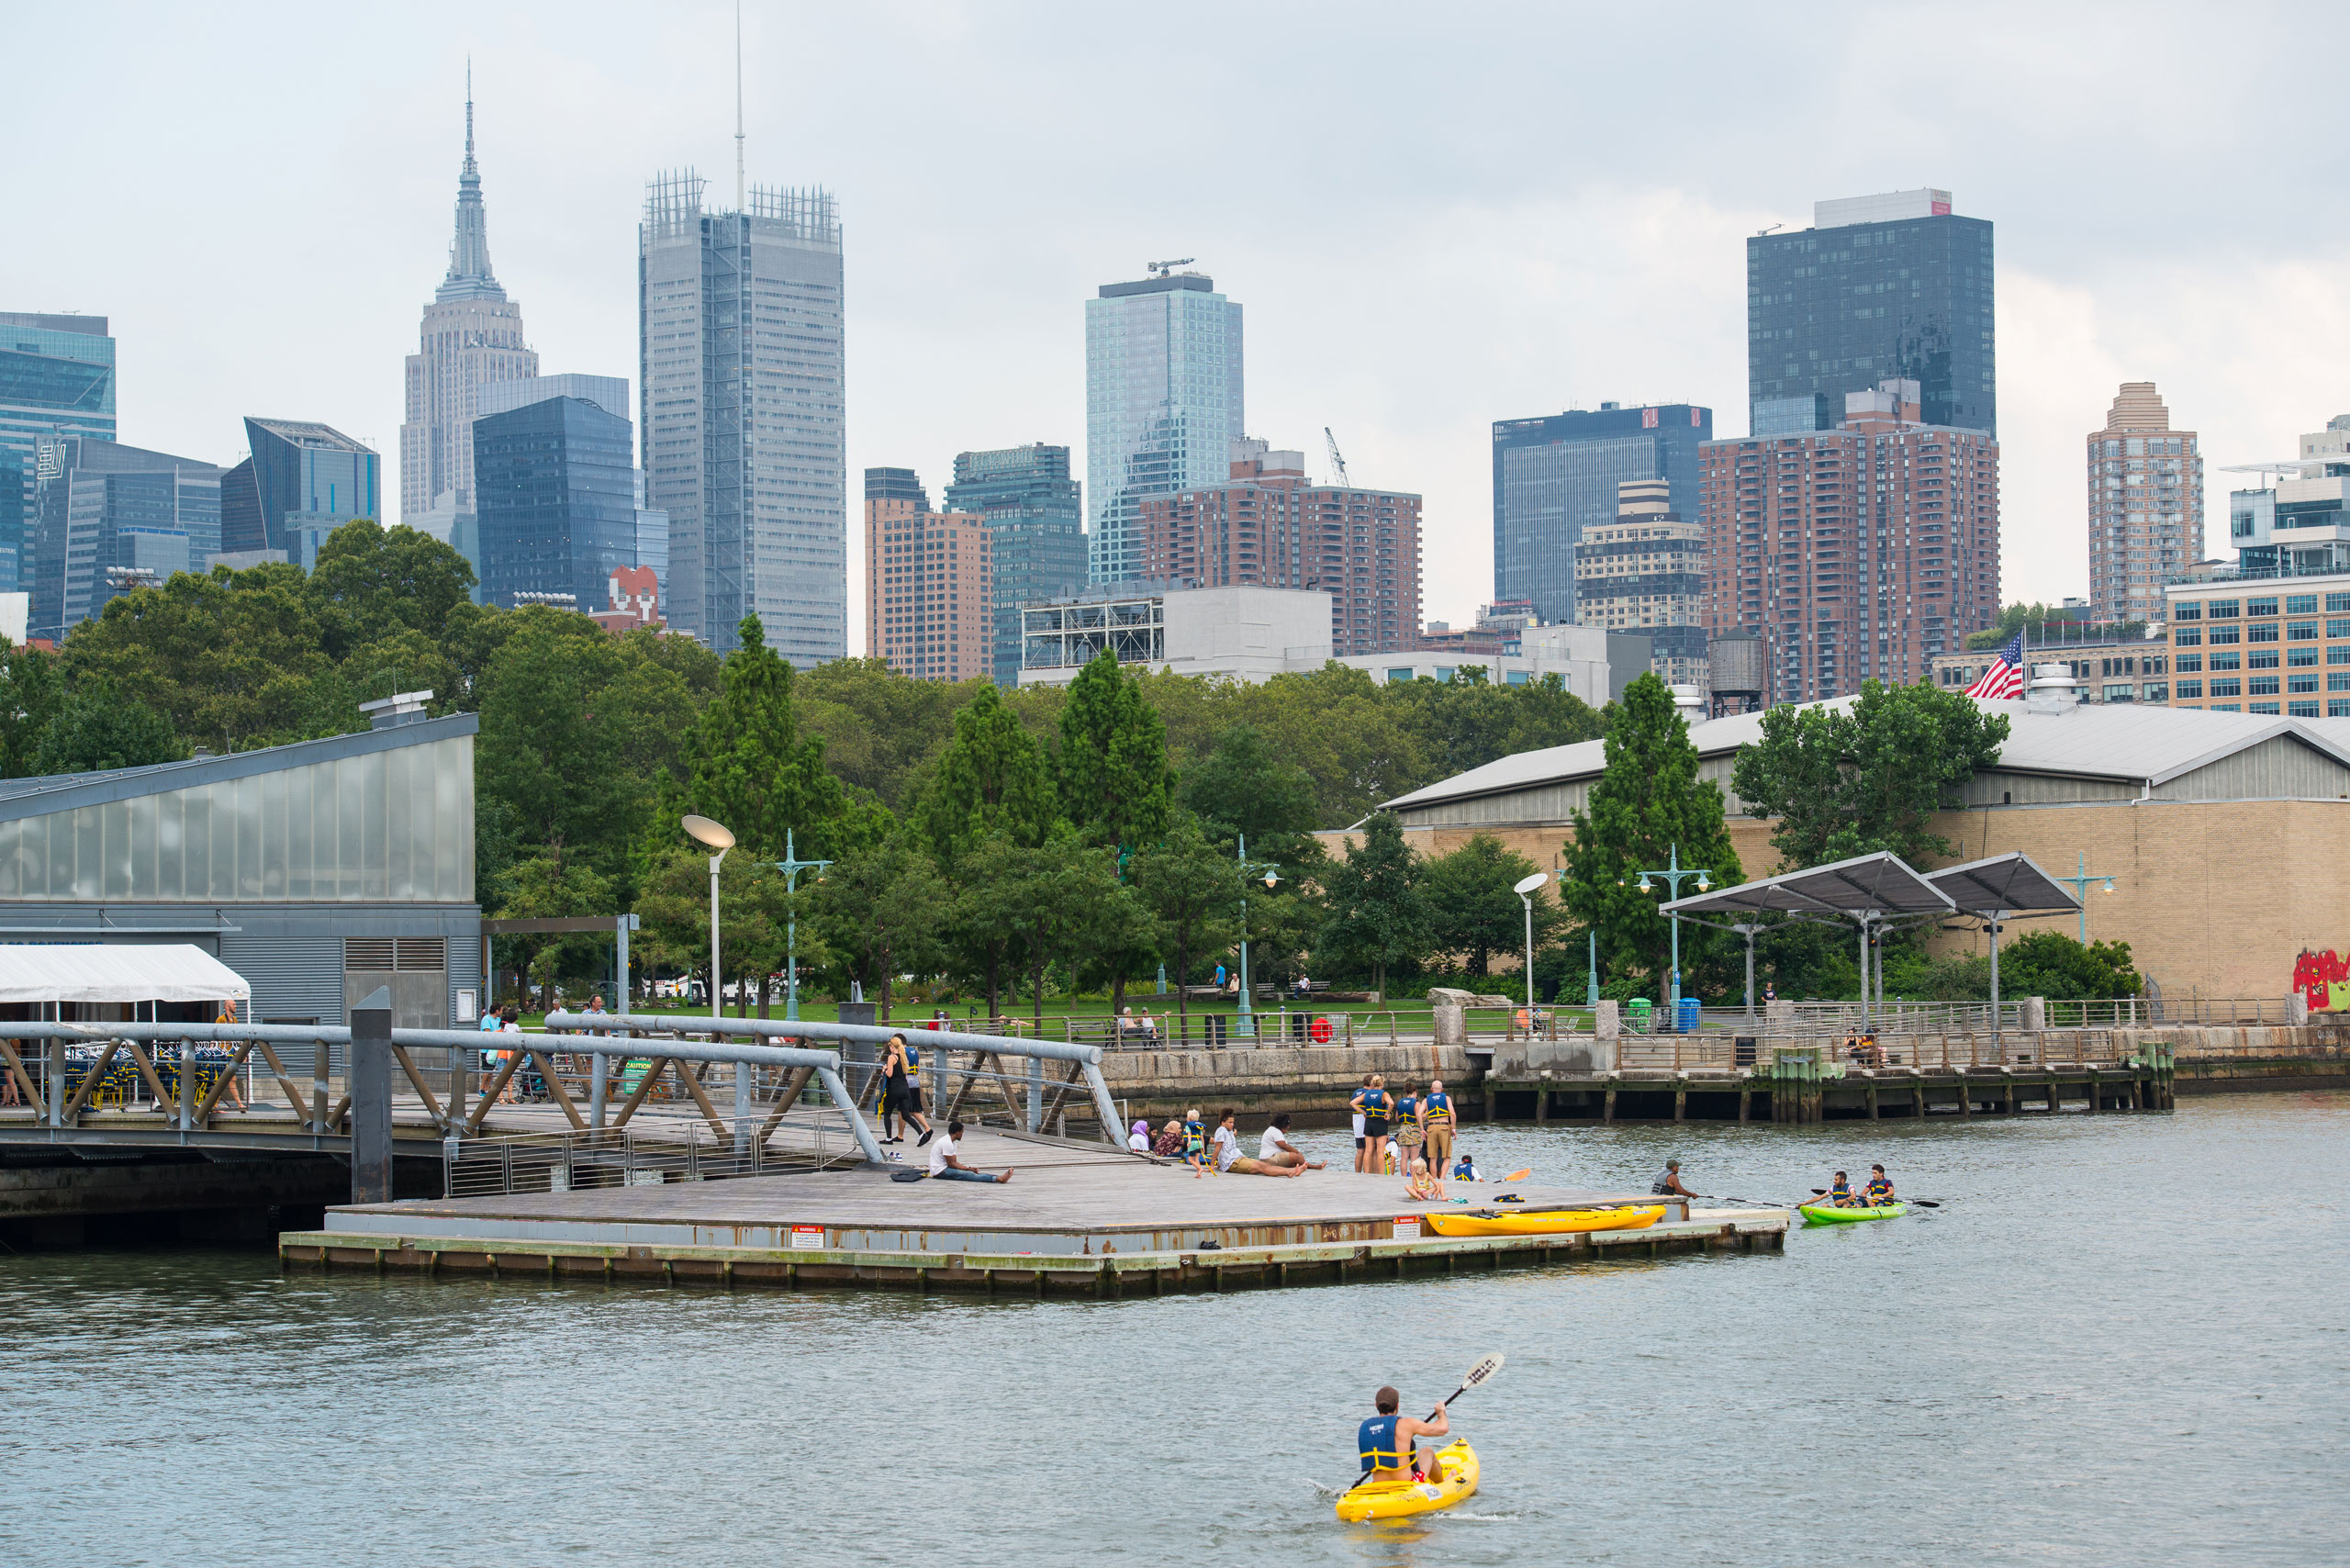 Kayakers head off into the water from the Pier 96 Boathouse at Hudson River Park